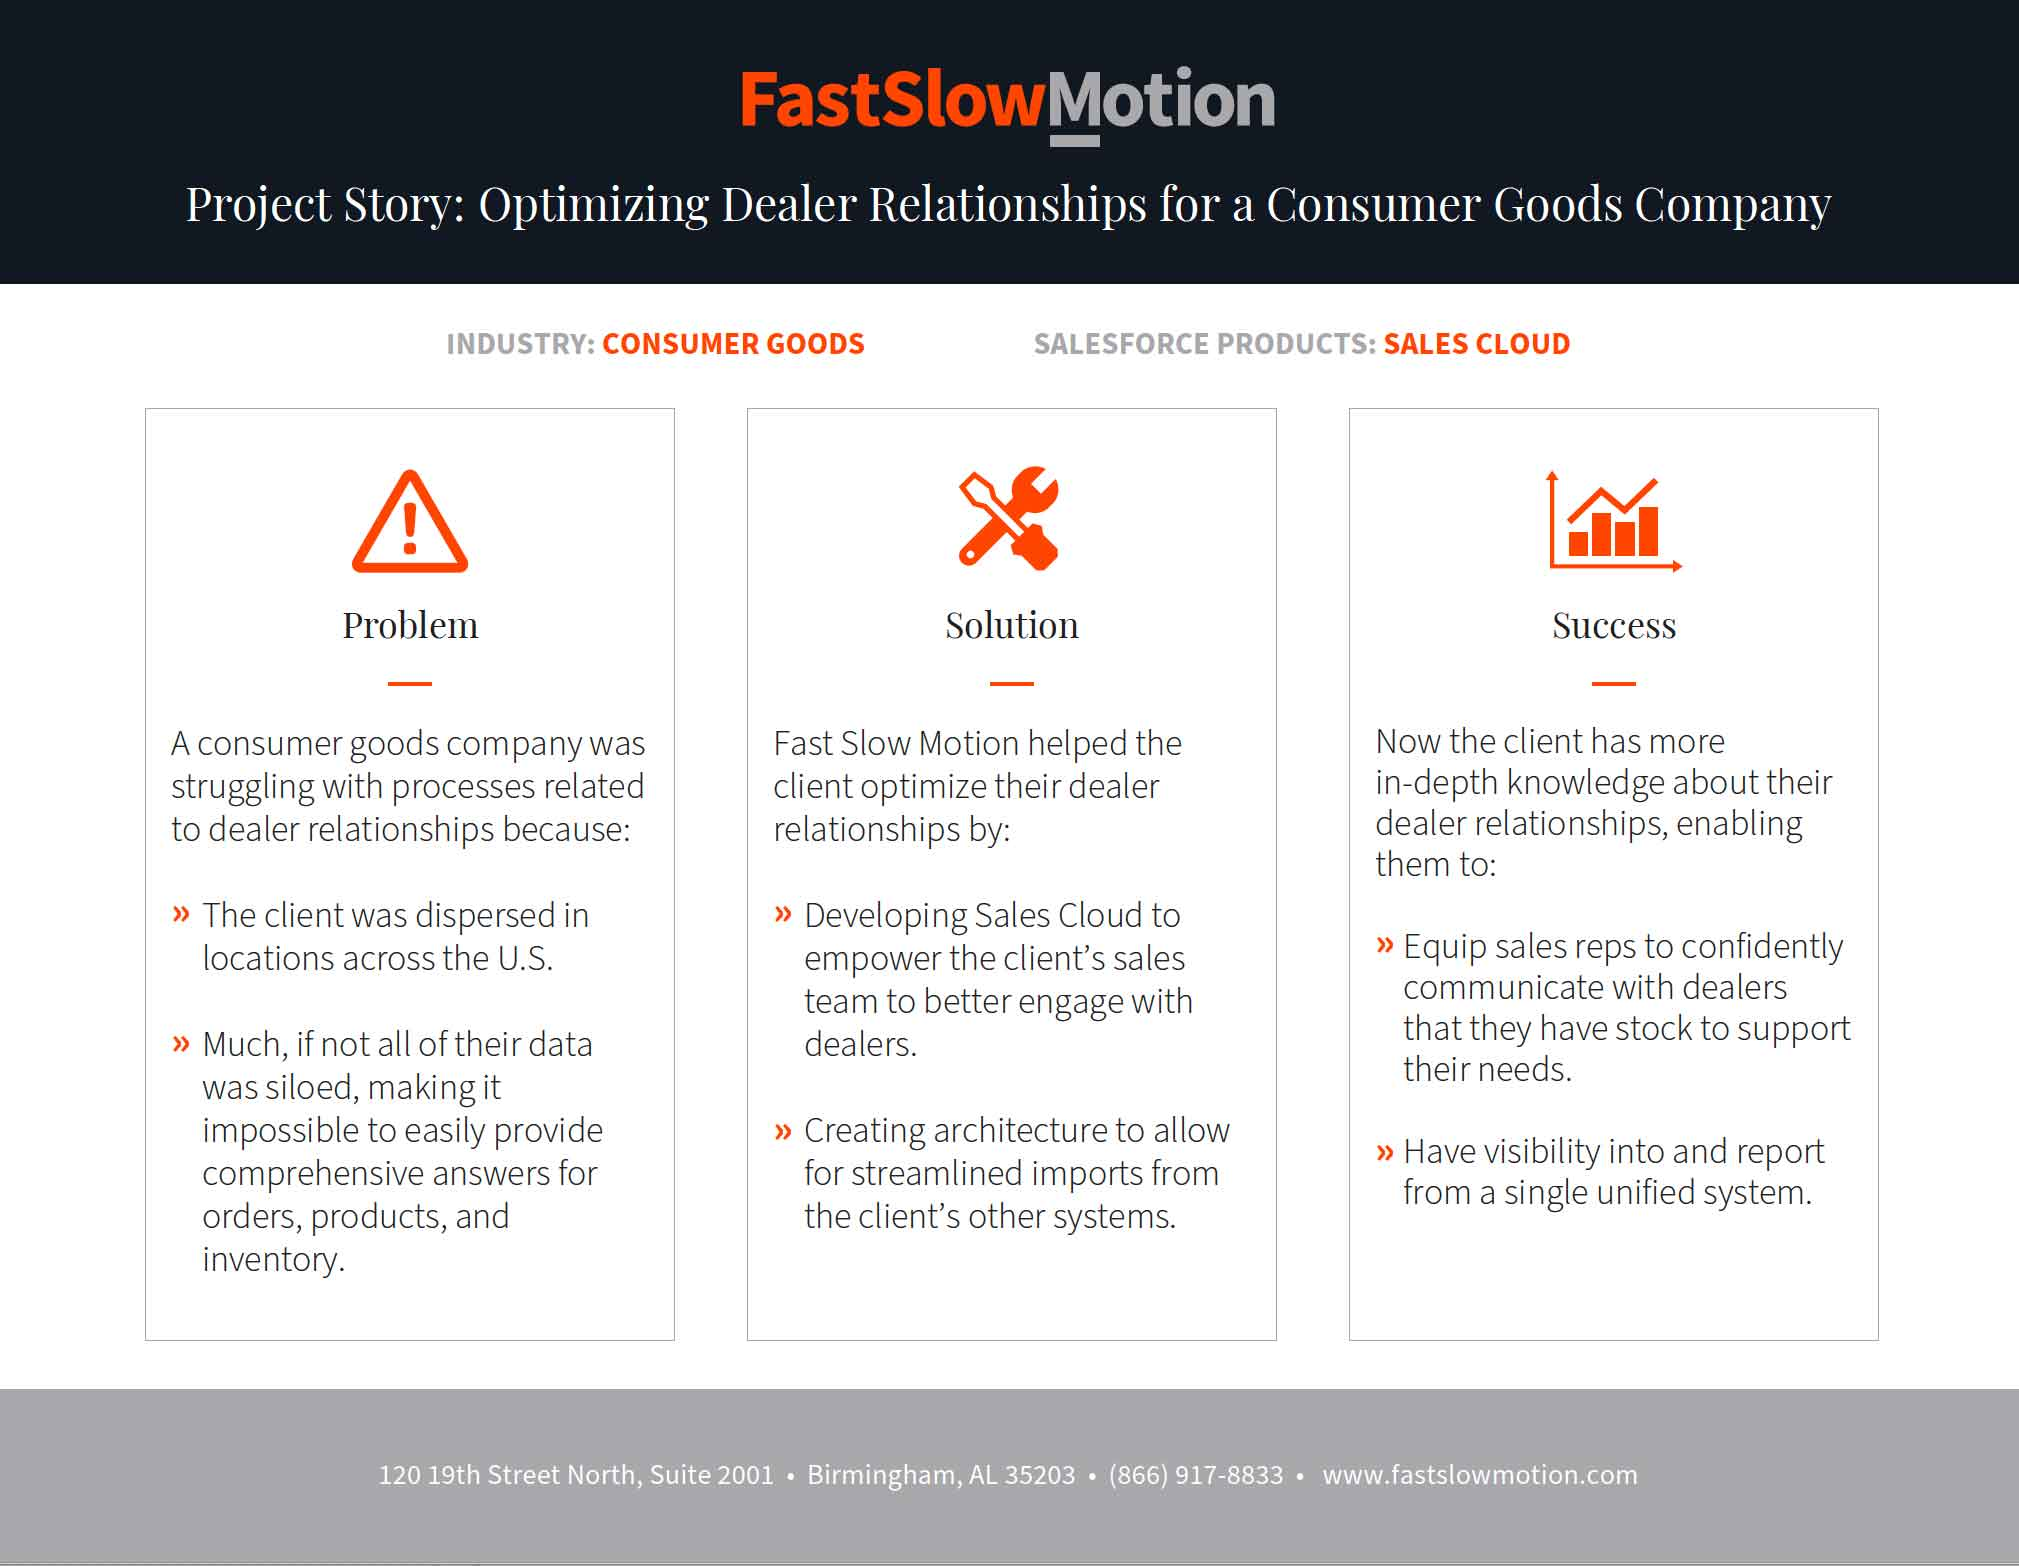 Project Story: Optimizing Dealer Relationships for a Consumer Goods Company